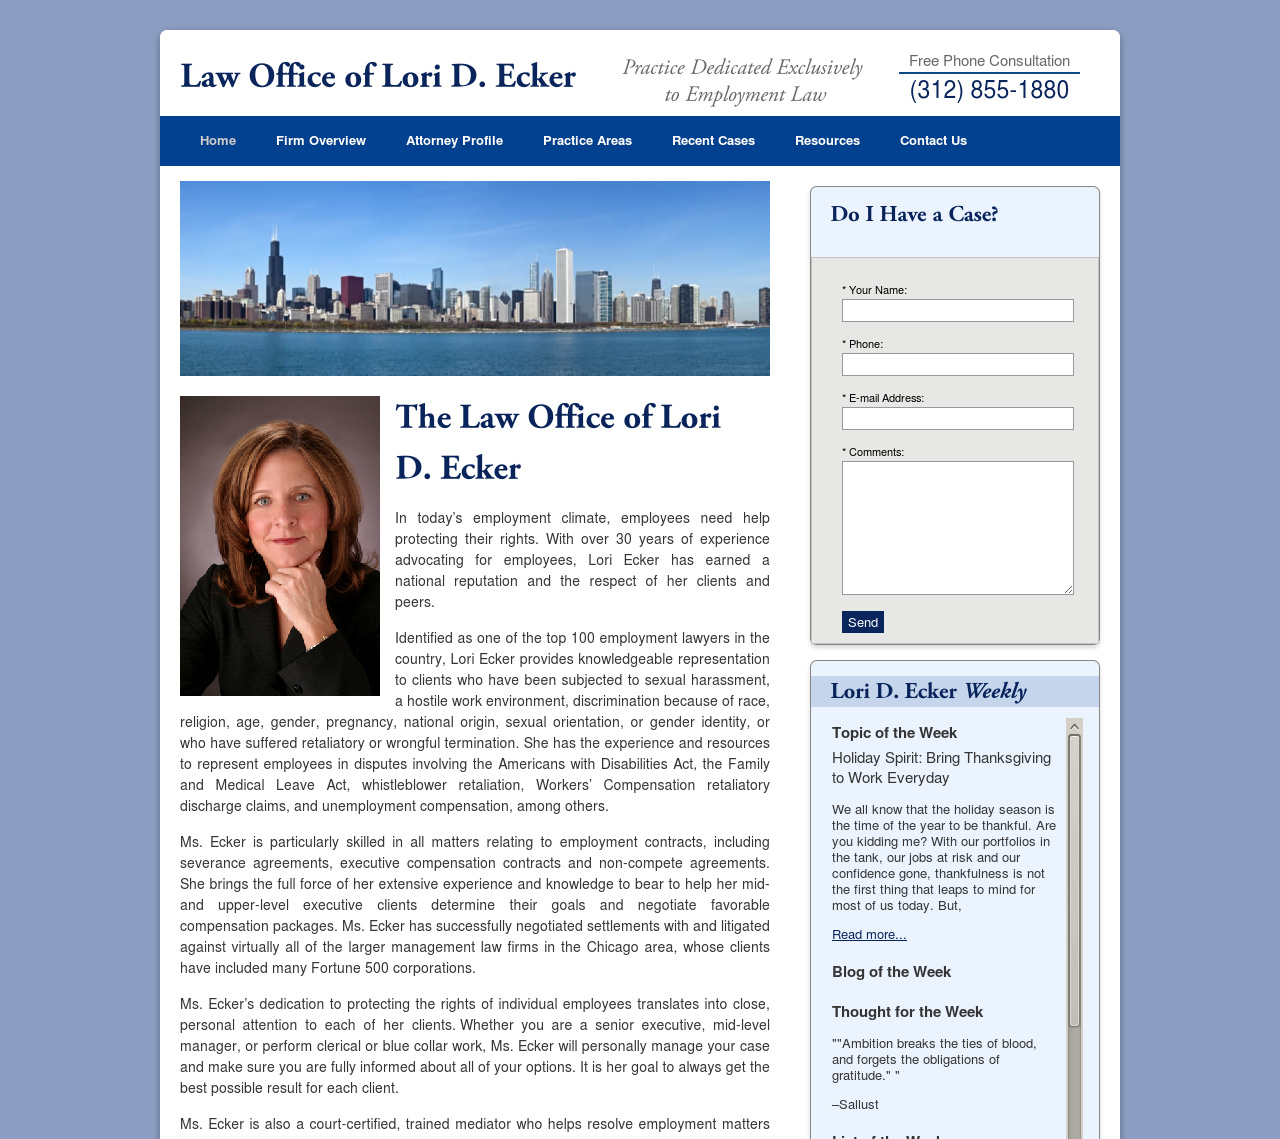 Law Office of Lori D. Ecker